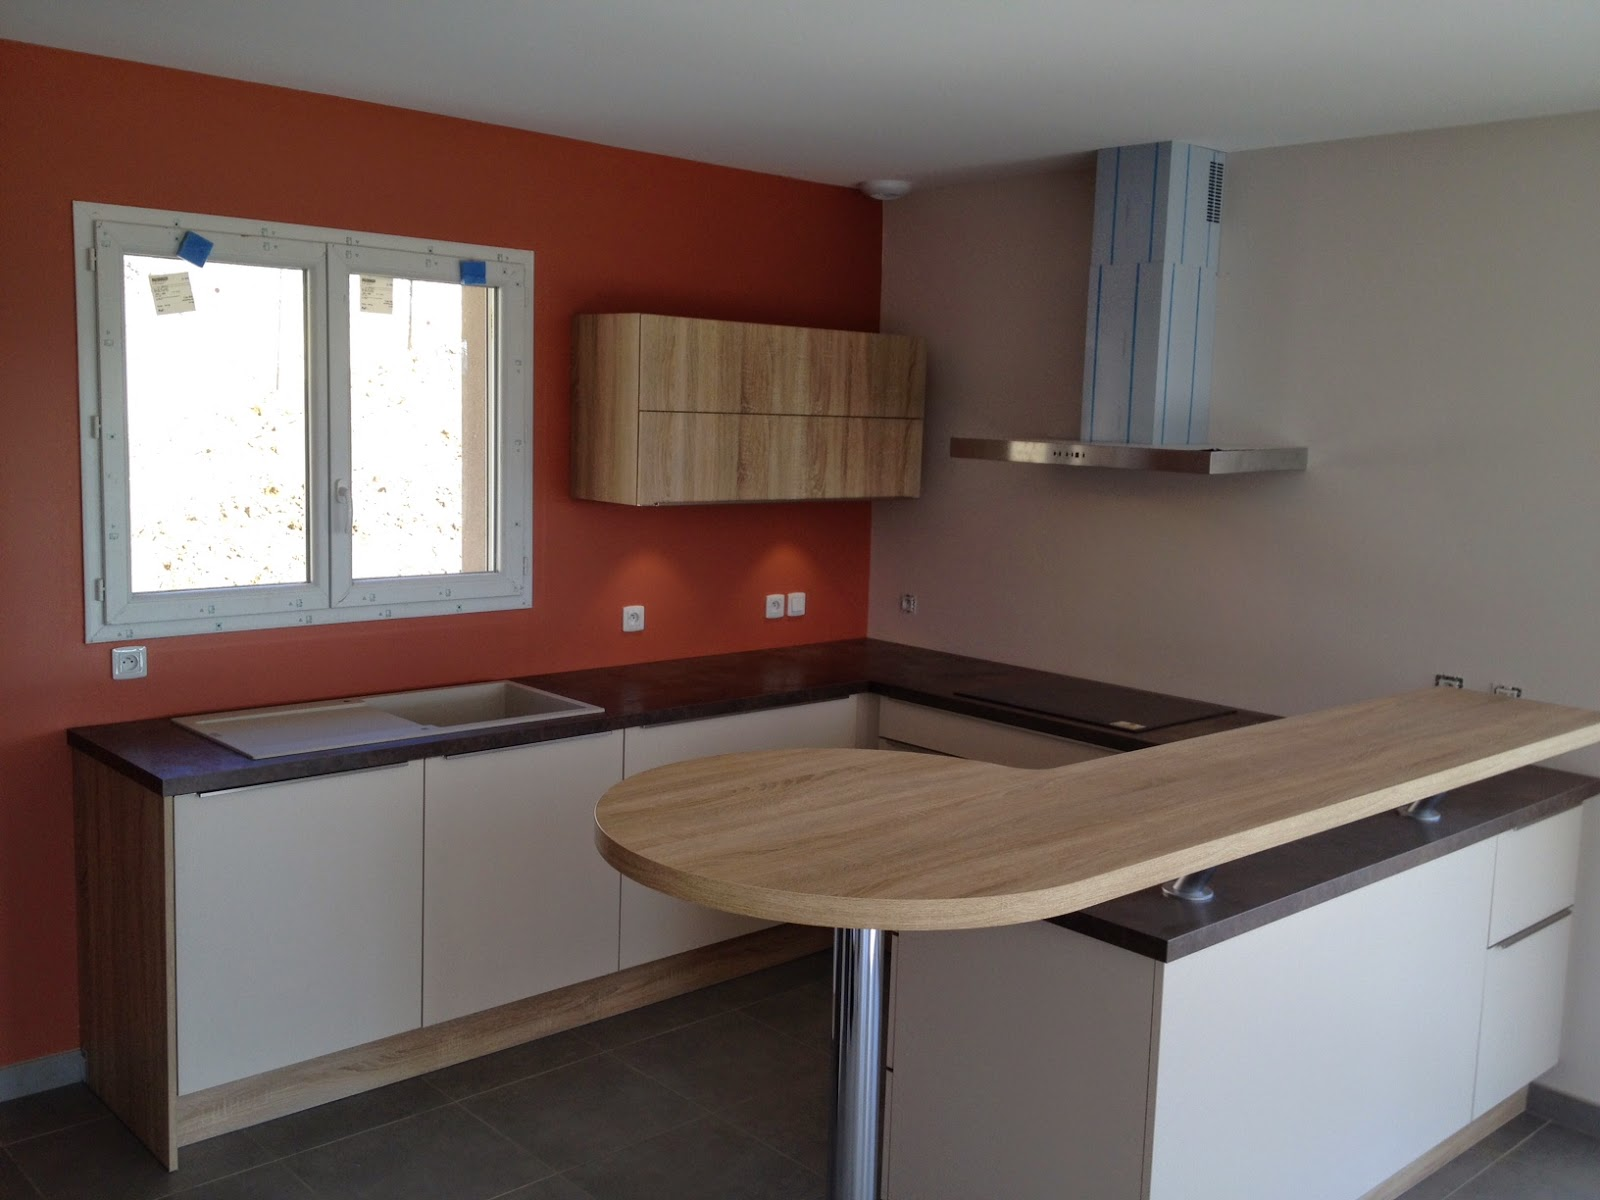 Faade Cuisine Sable Plan De Travail Oxyde Cuivre Table Repas Chne Sierra  Poigne Philia With Table Mobalpa